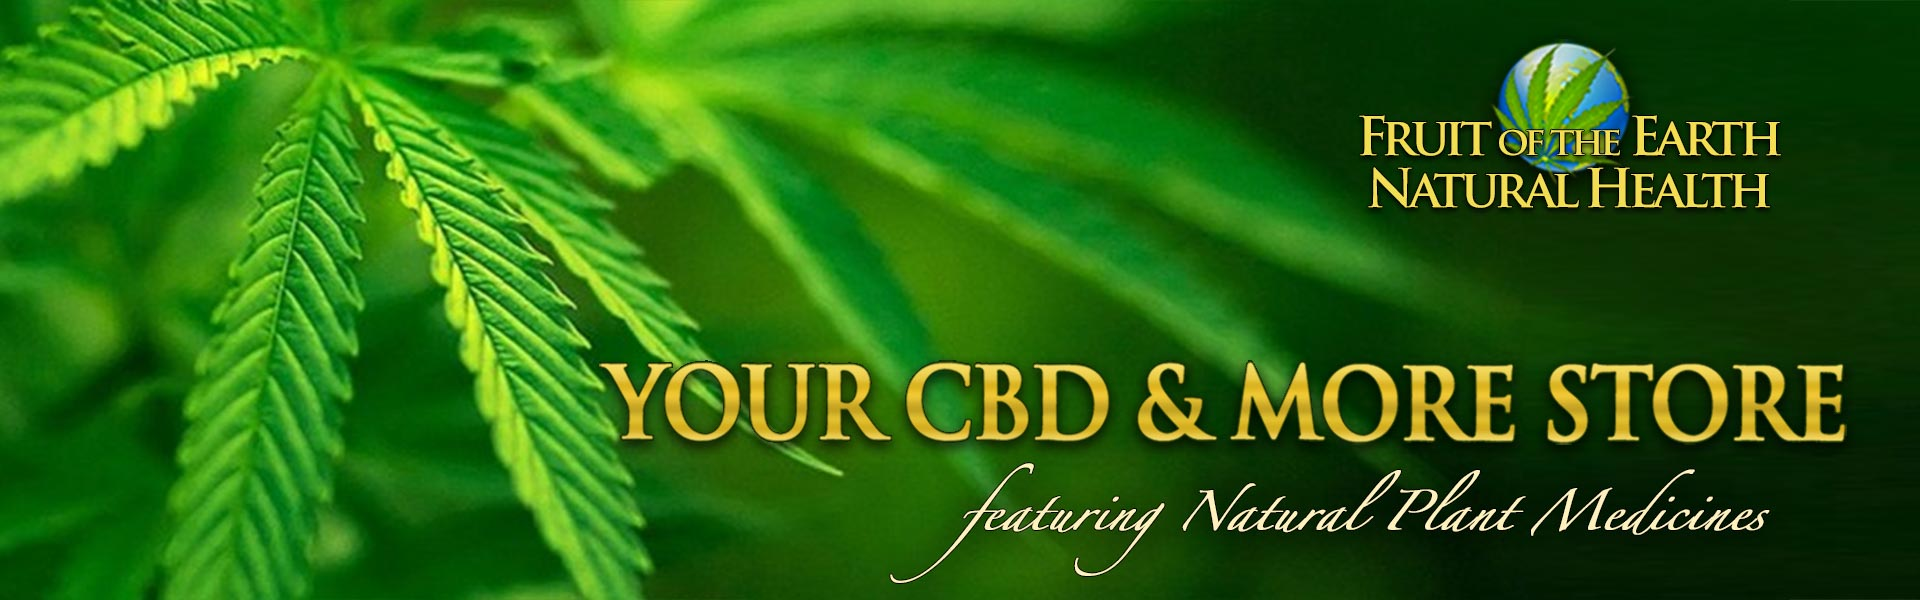 CBD and More Store